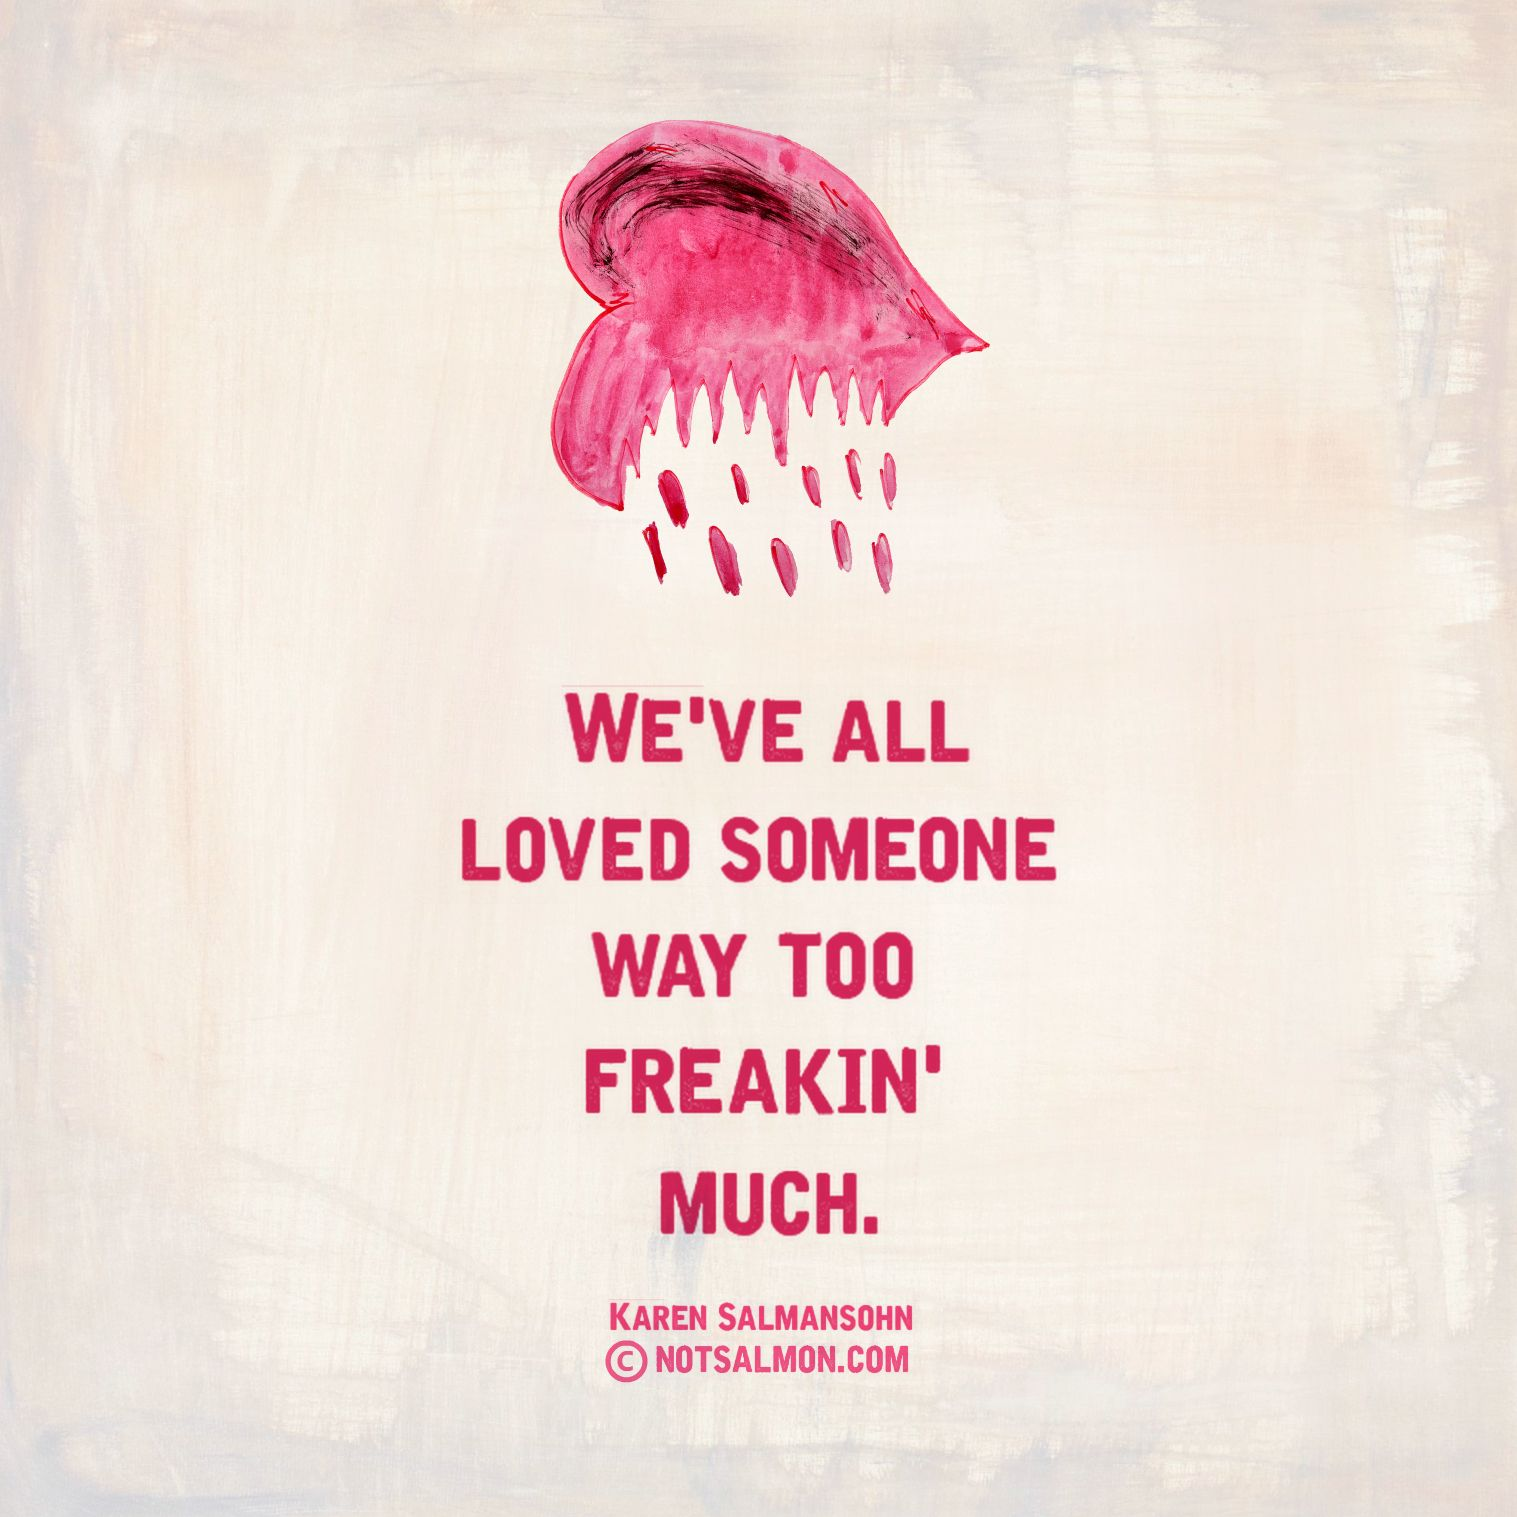 We've all loved someone way too freakin' much. @notsalmon (Click image for tools and support to heal and move on from toxic love!)